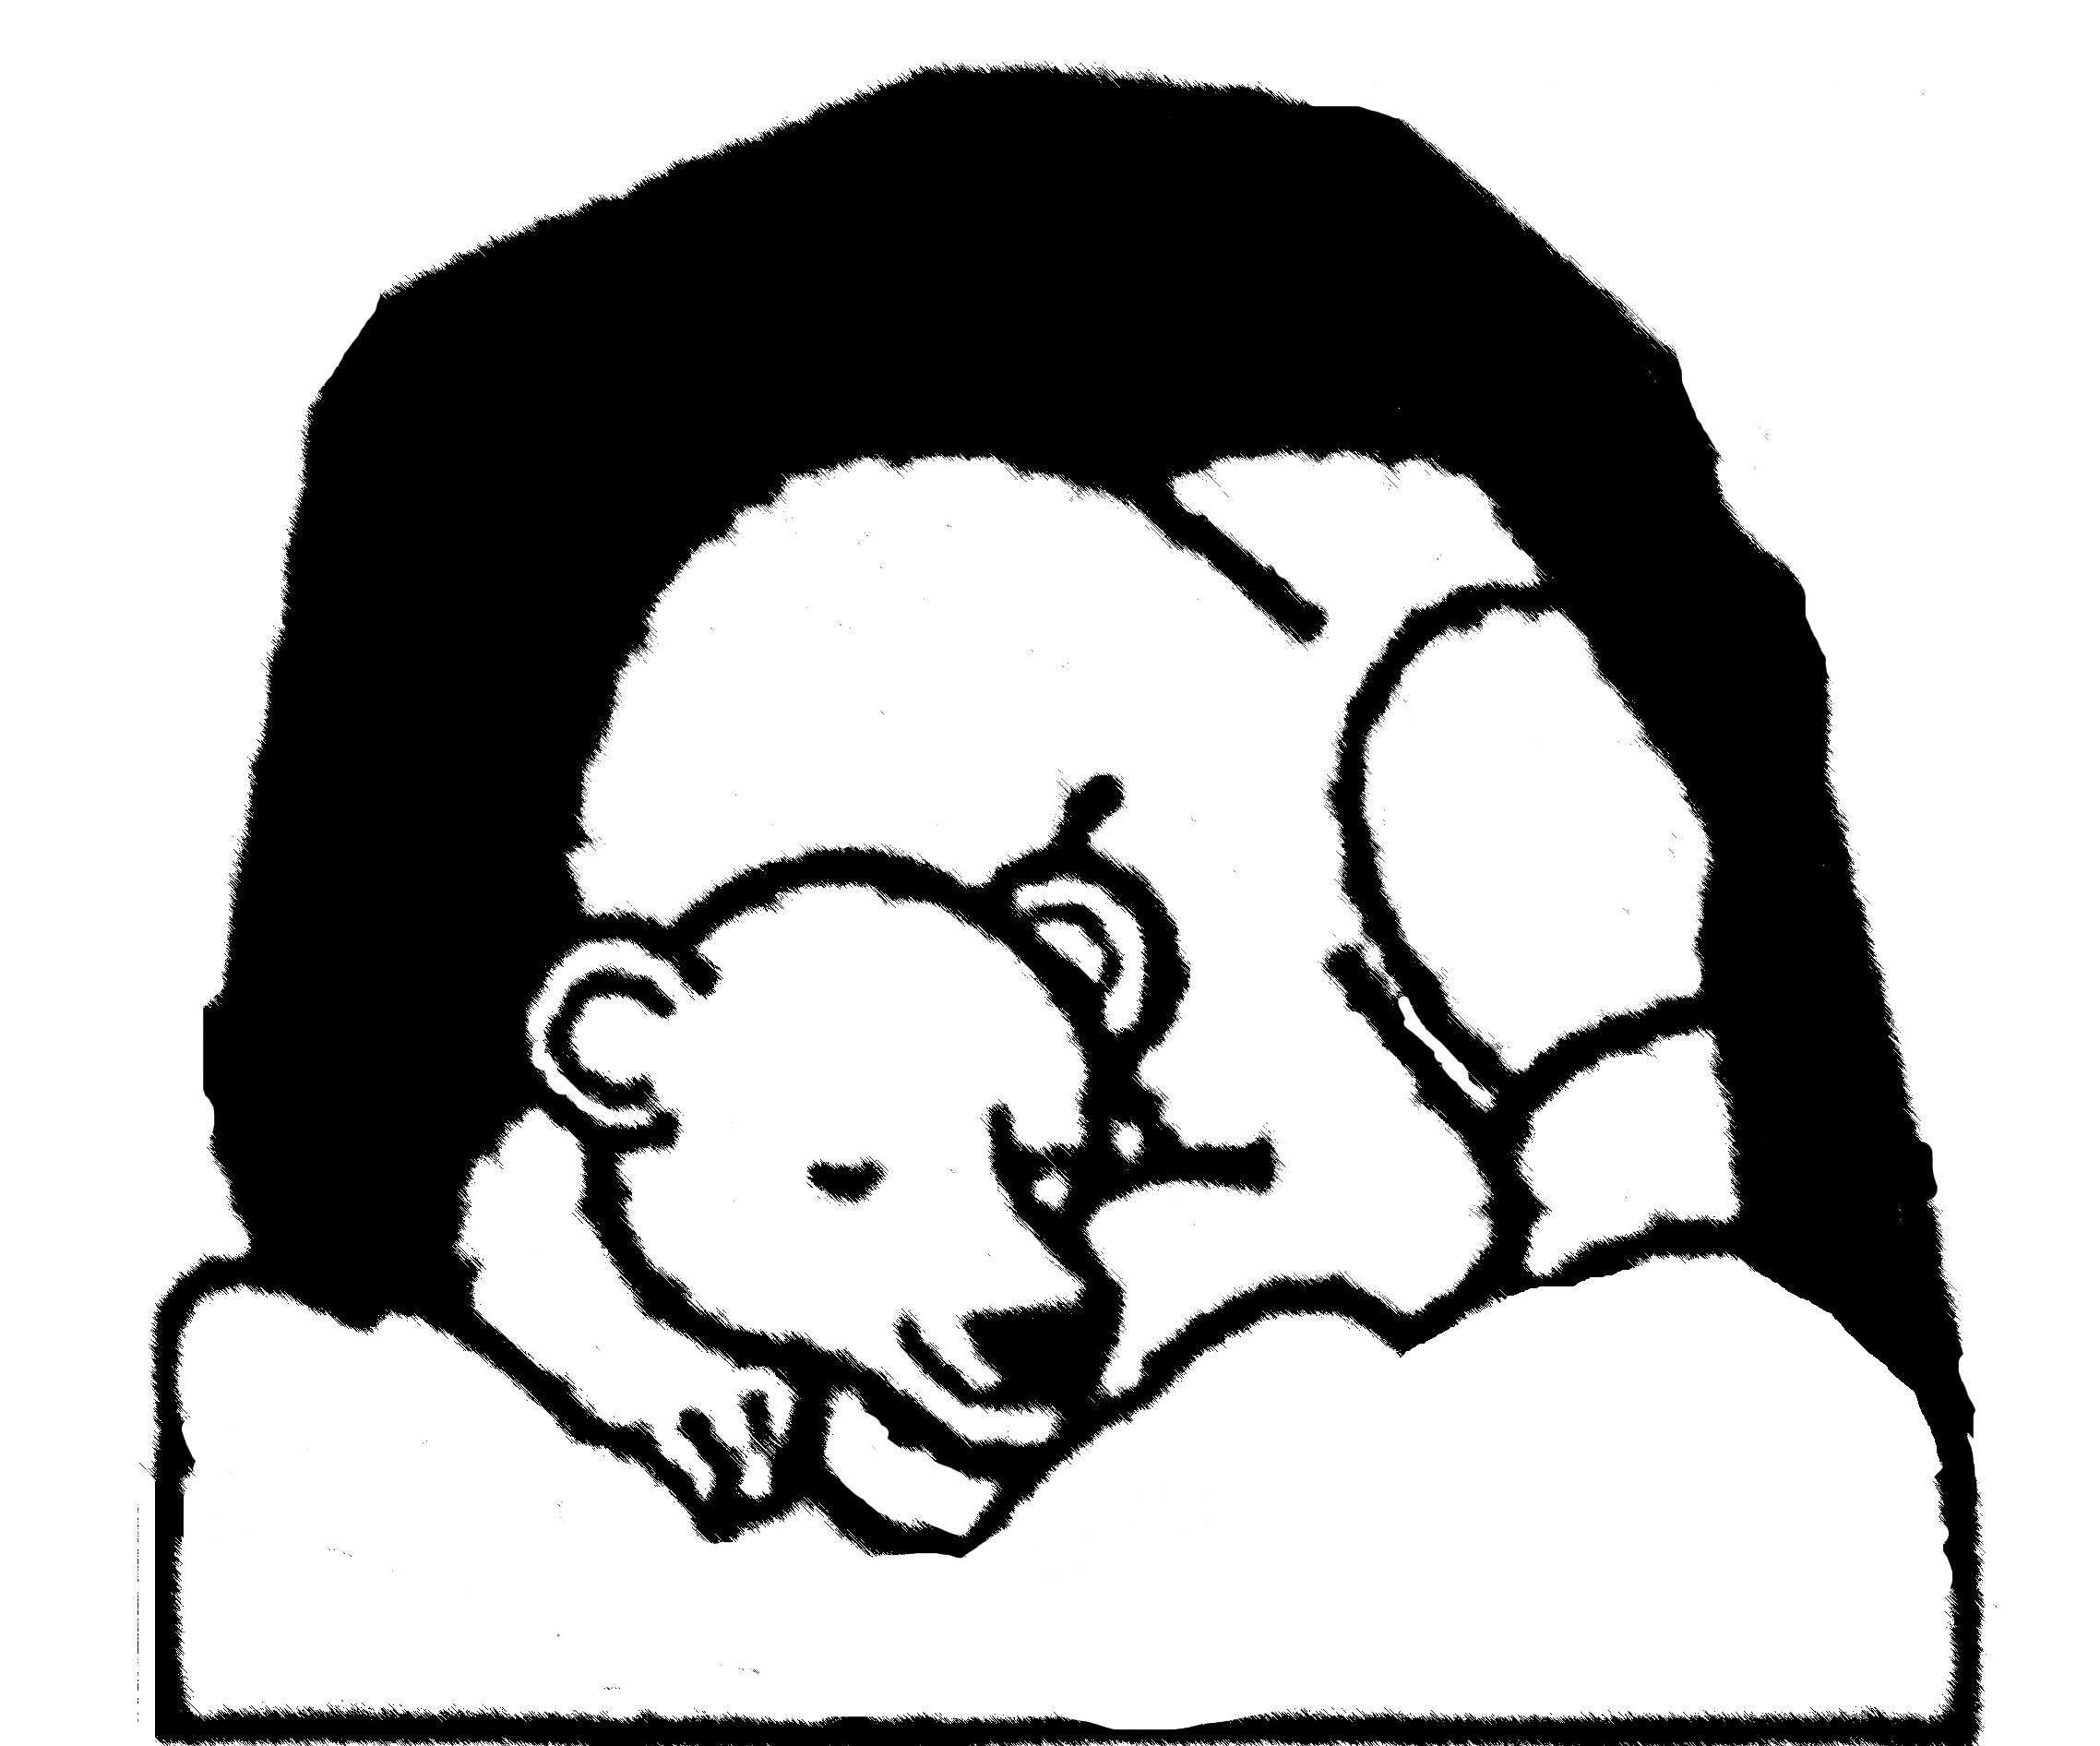 coloring pages bear hibernating - photo#27